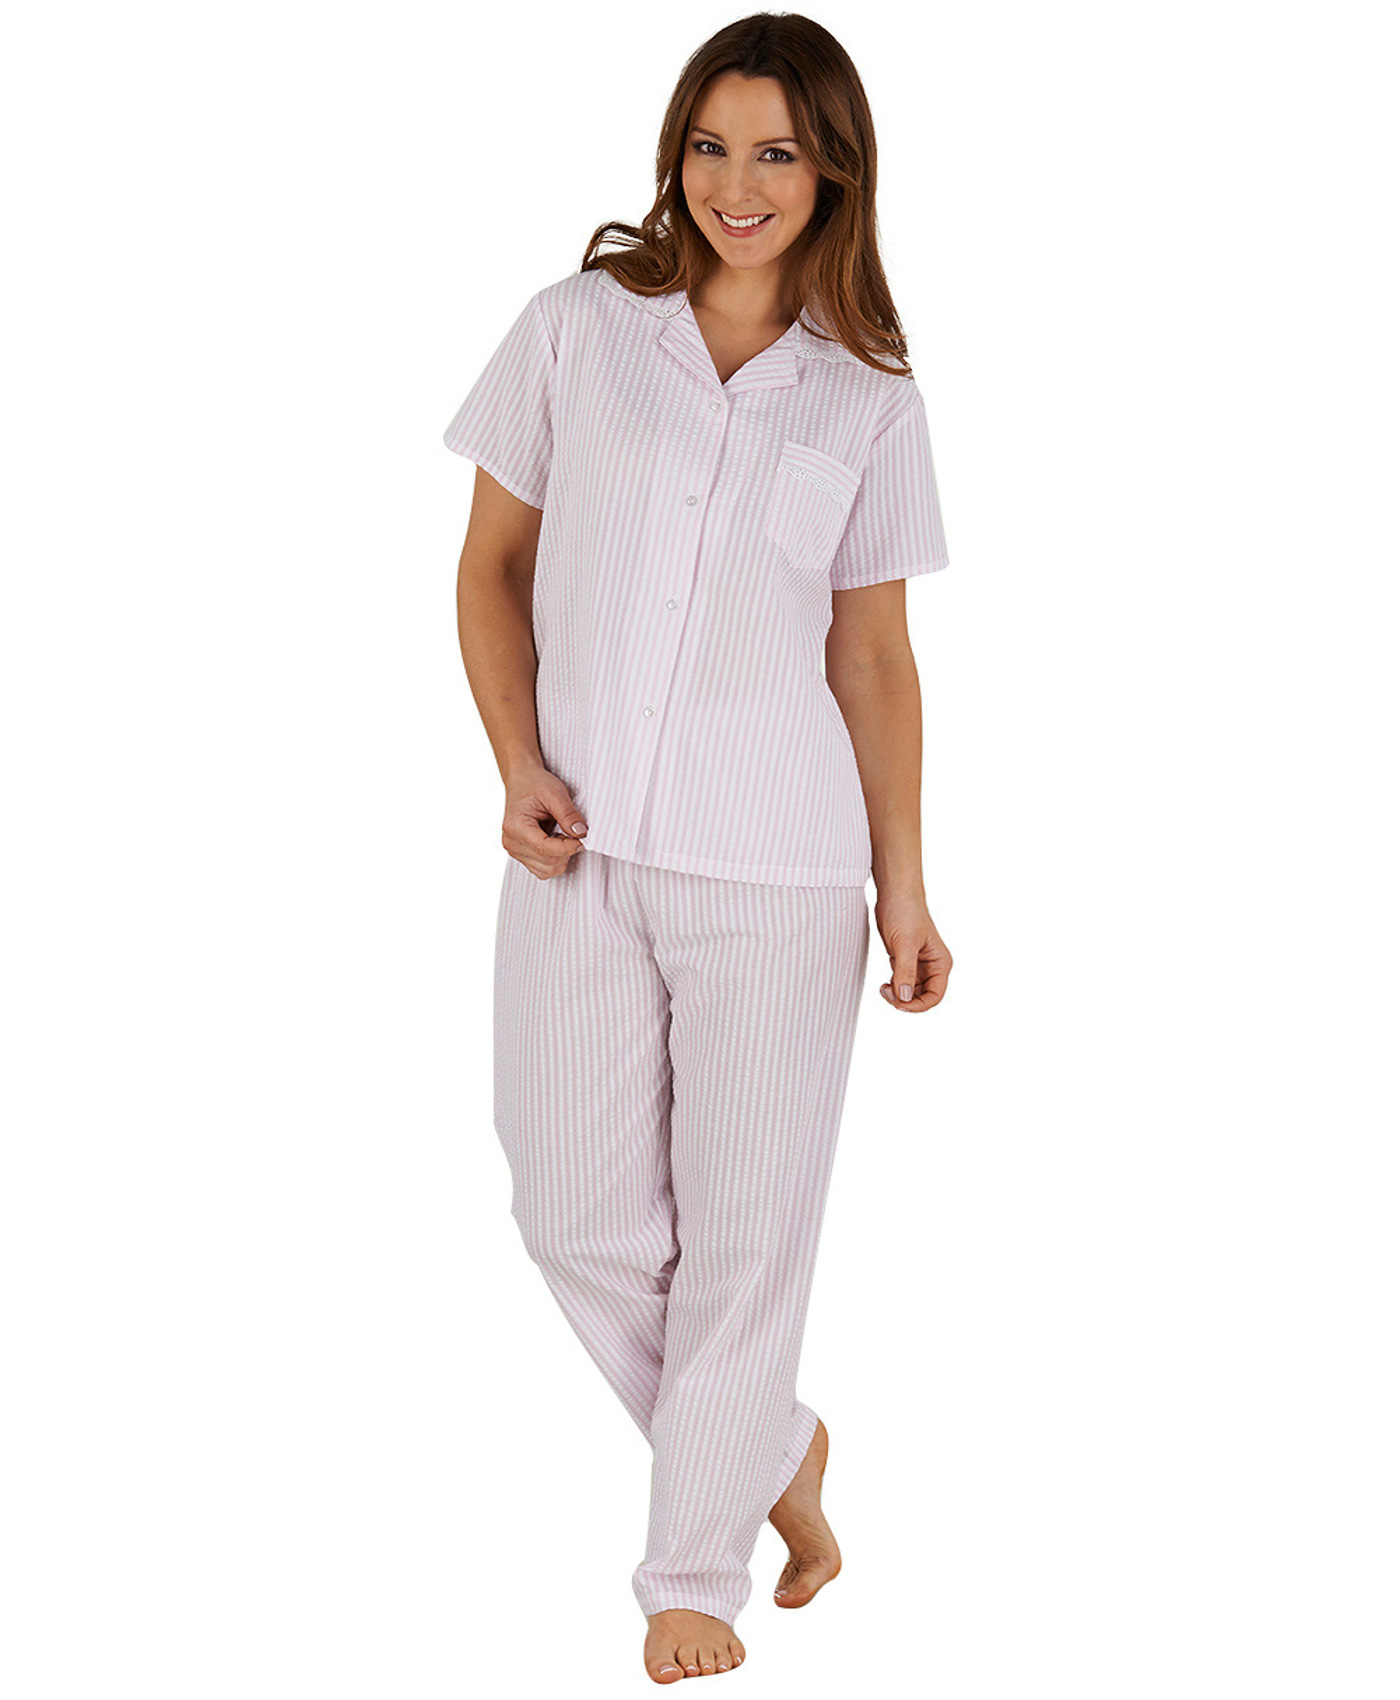 Pyjamas Bedtime can't come soon enough with one of our cashmere, silk or cotton pyjama sets. Updates this season include snowfall, star and polka-dot prints, as well as practical details including roomy pockets and adjustable straps.